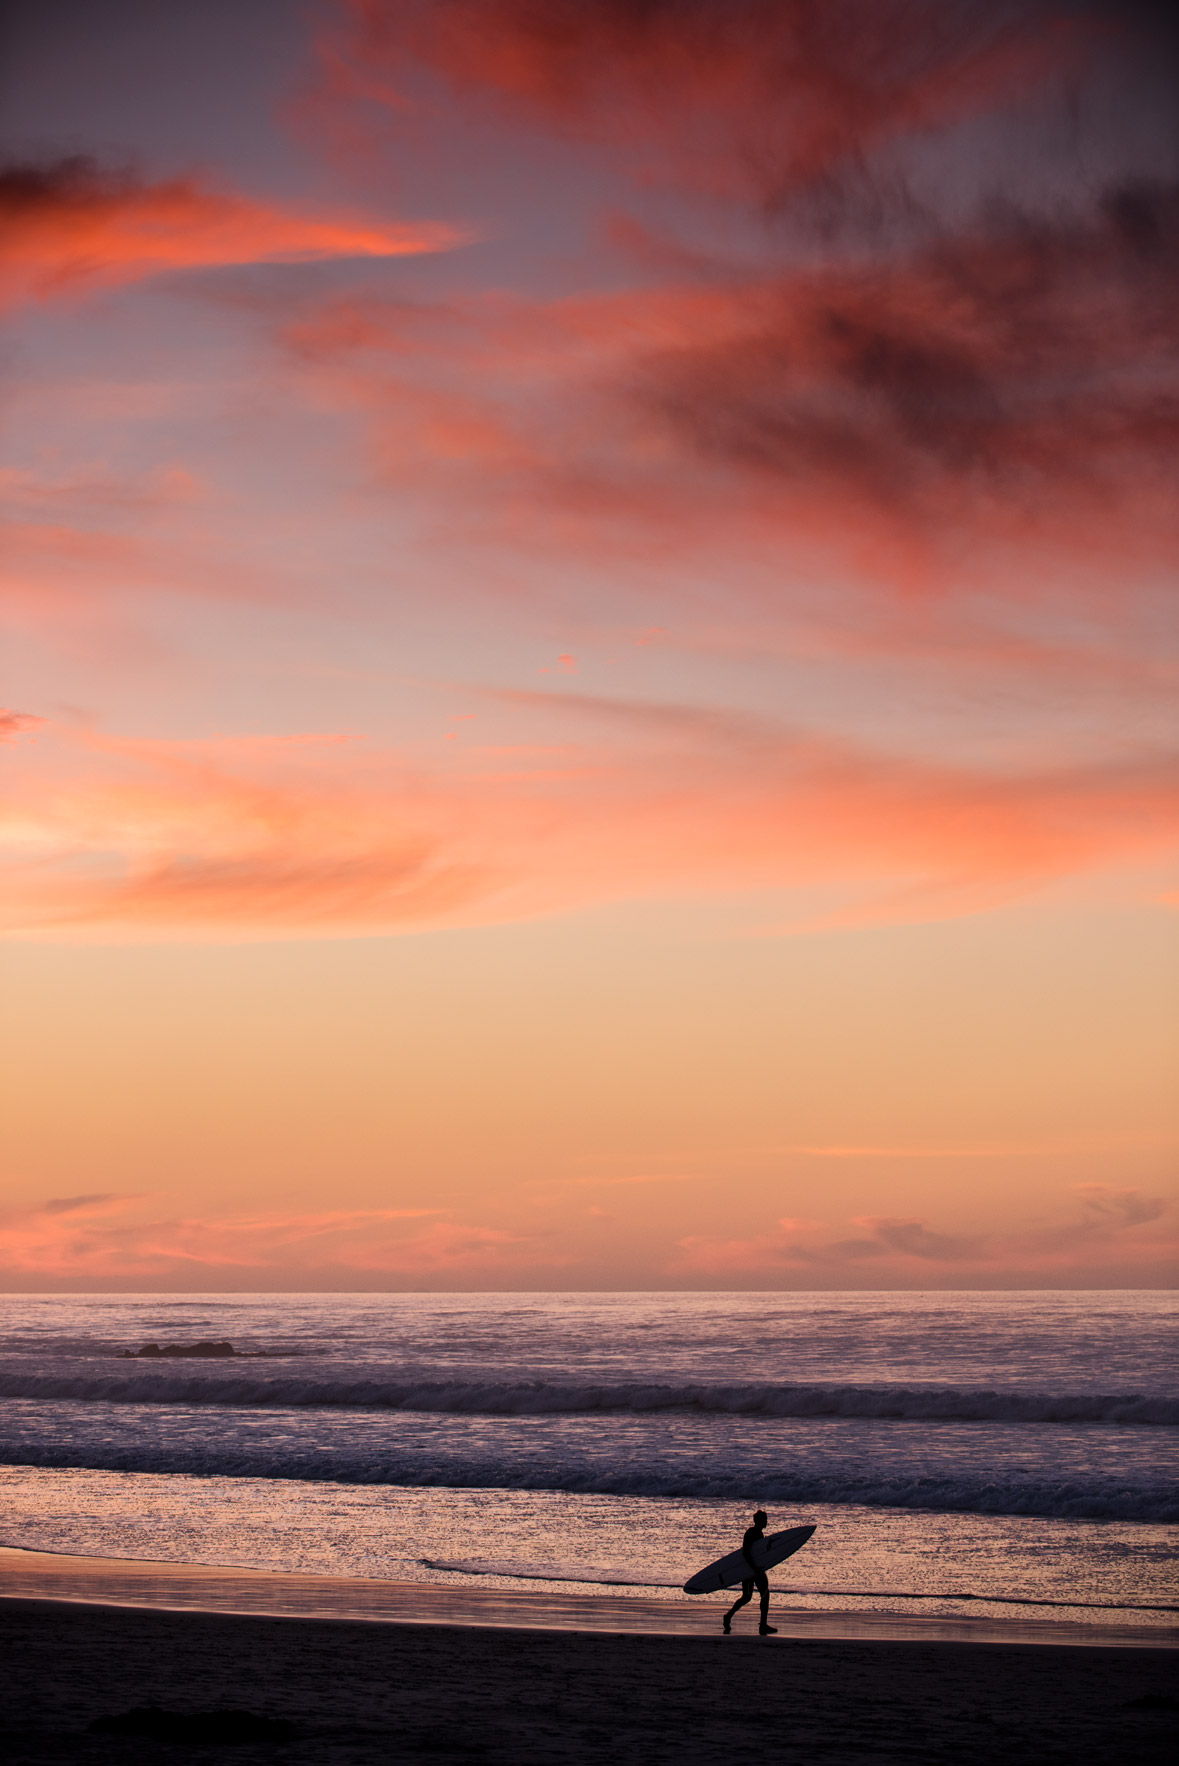 A surfer walks in silhouette under a sunset sky at Asilomar State Beach, Pacific Grove, California